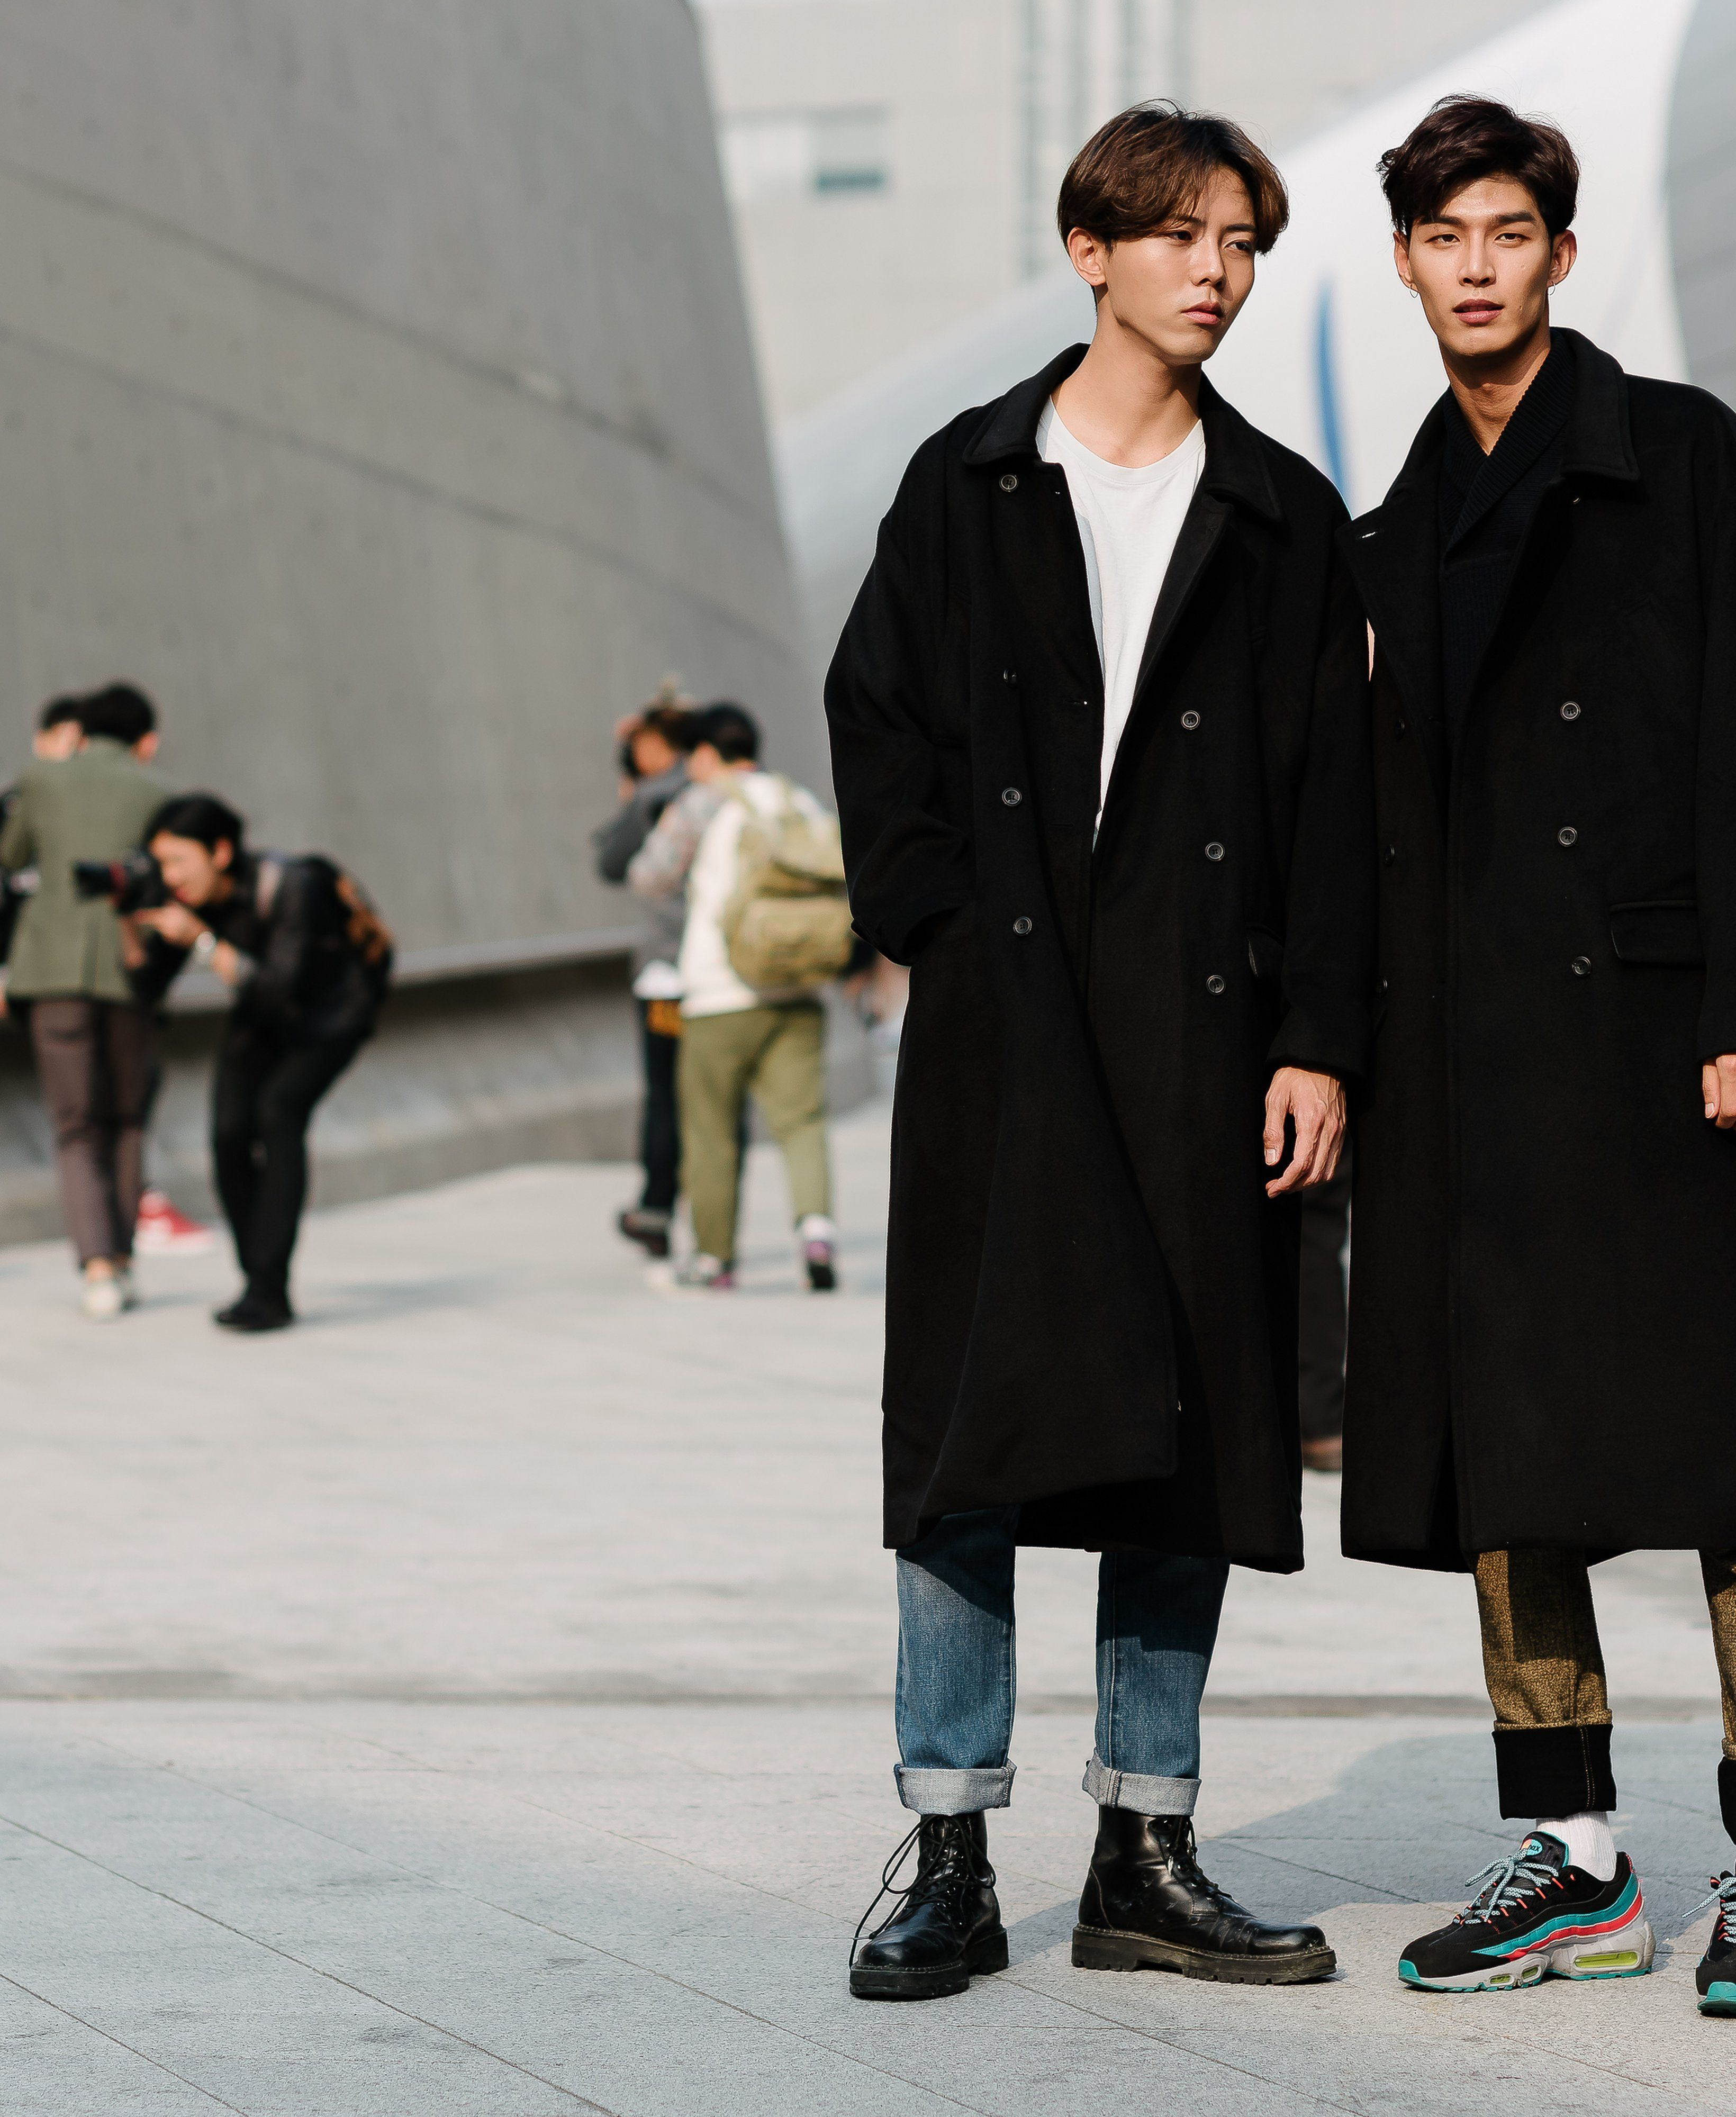 The Best Street Style From Seoul Fashion Week Seoul Fashion Week Seoul Fashion Cool Street Fashion